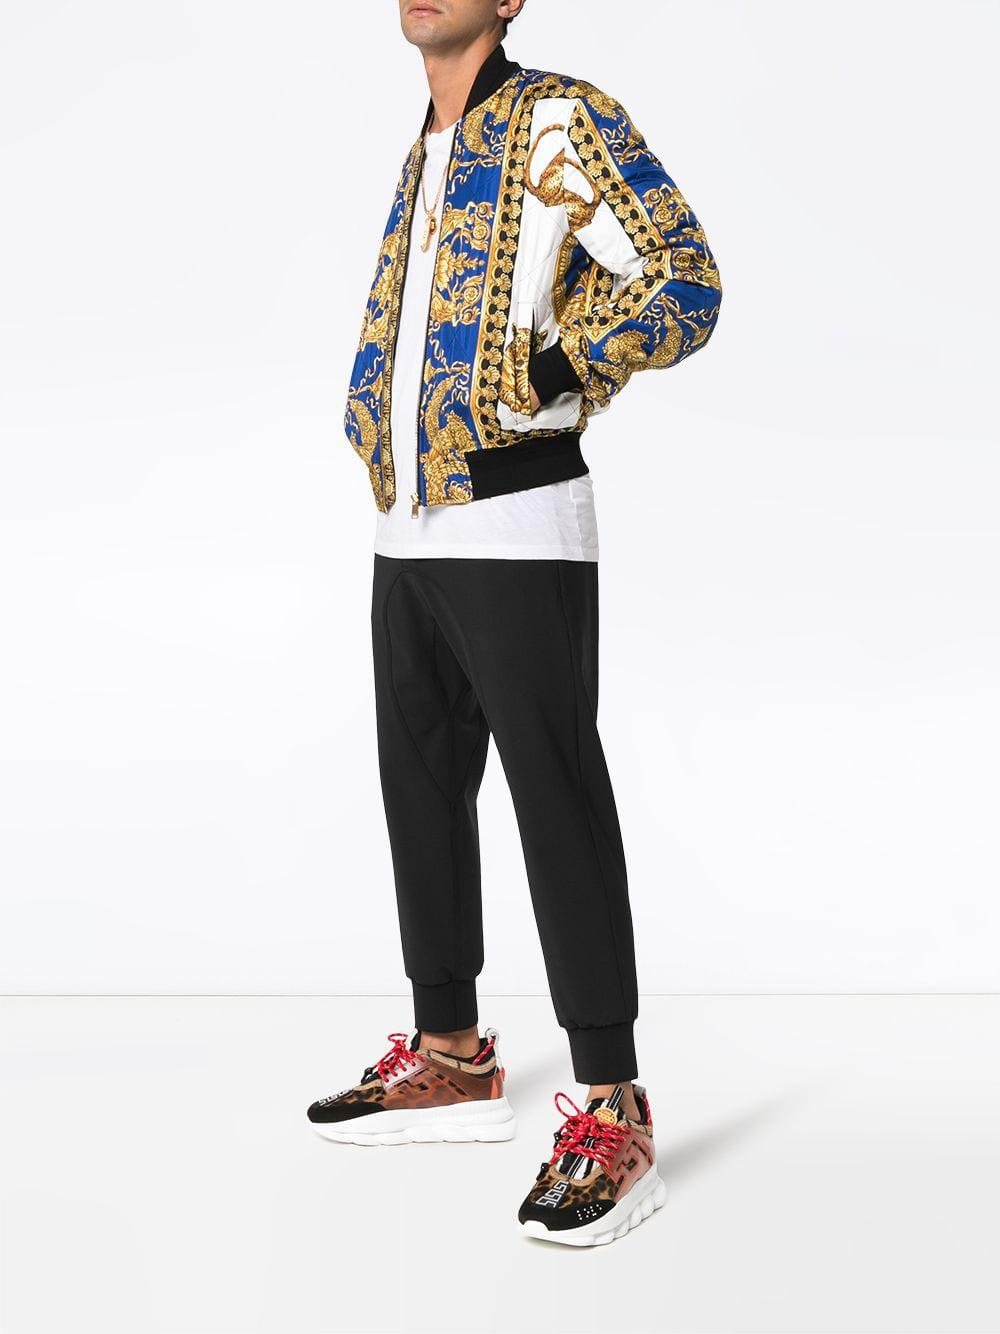 Versace Barocco Print Bomber Jacket In Blue For Men Lyst